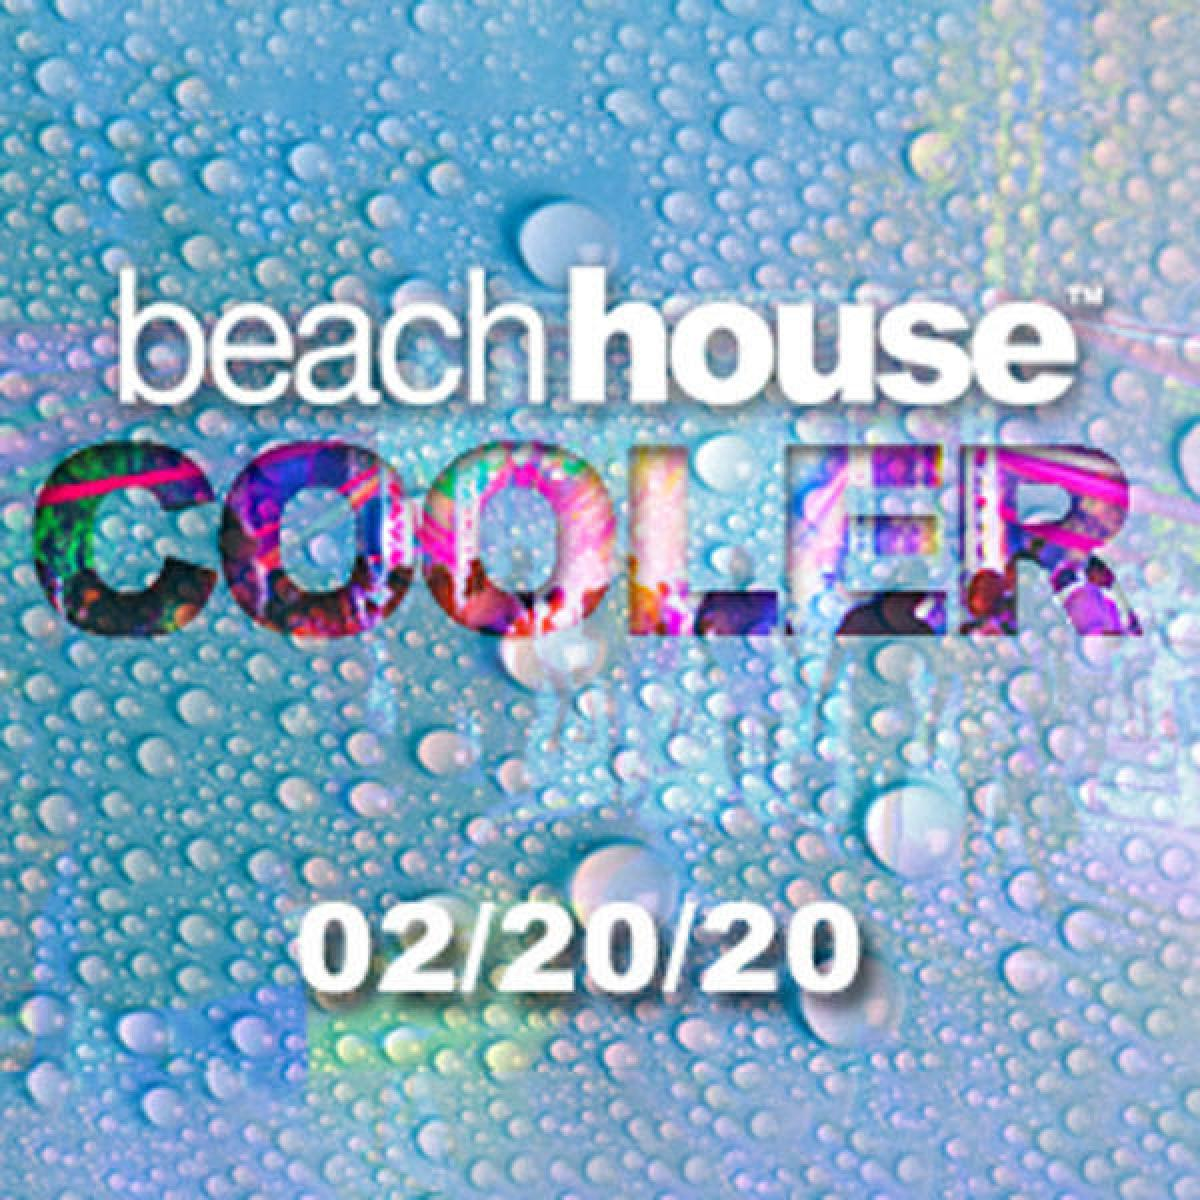 Beach House Cooler flyer or graphic.